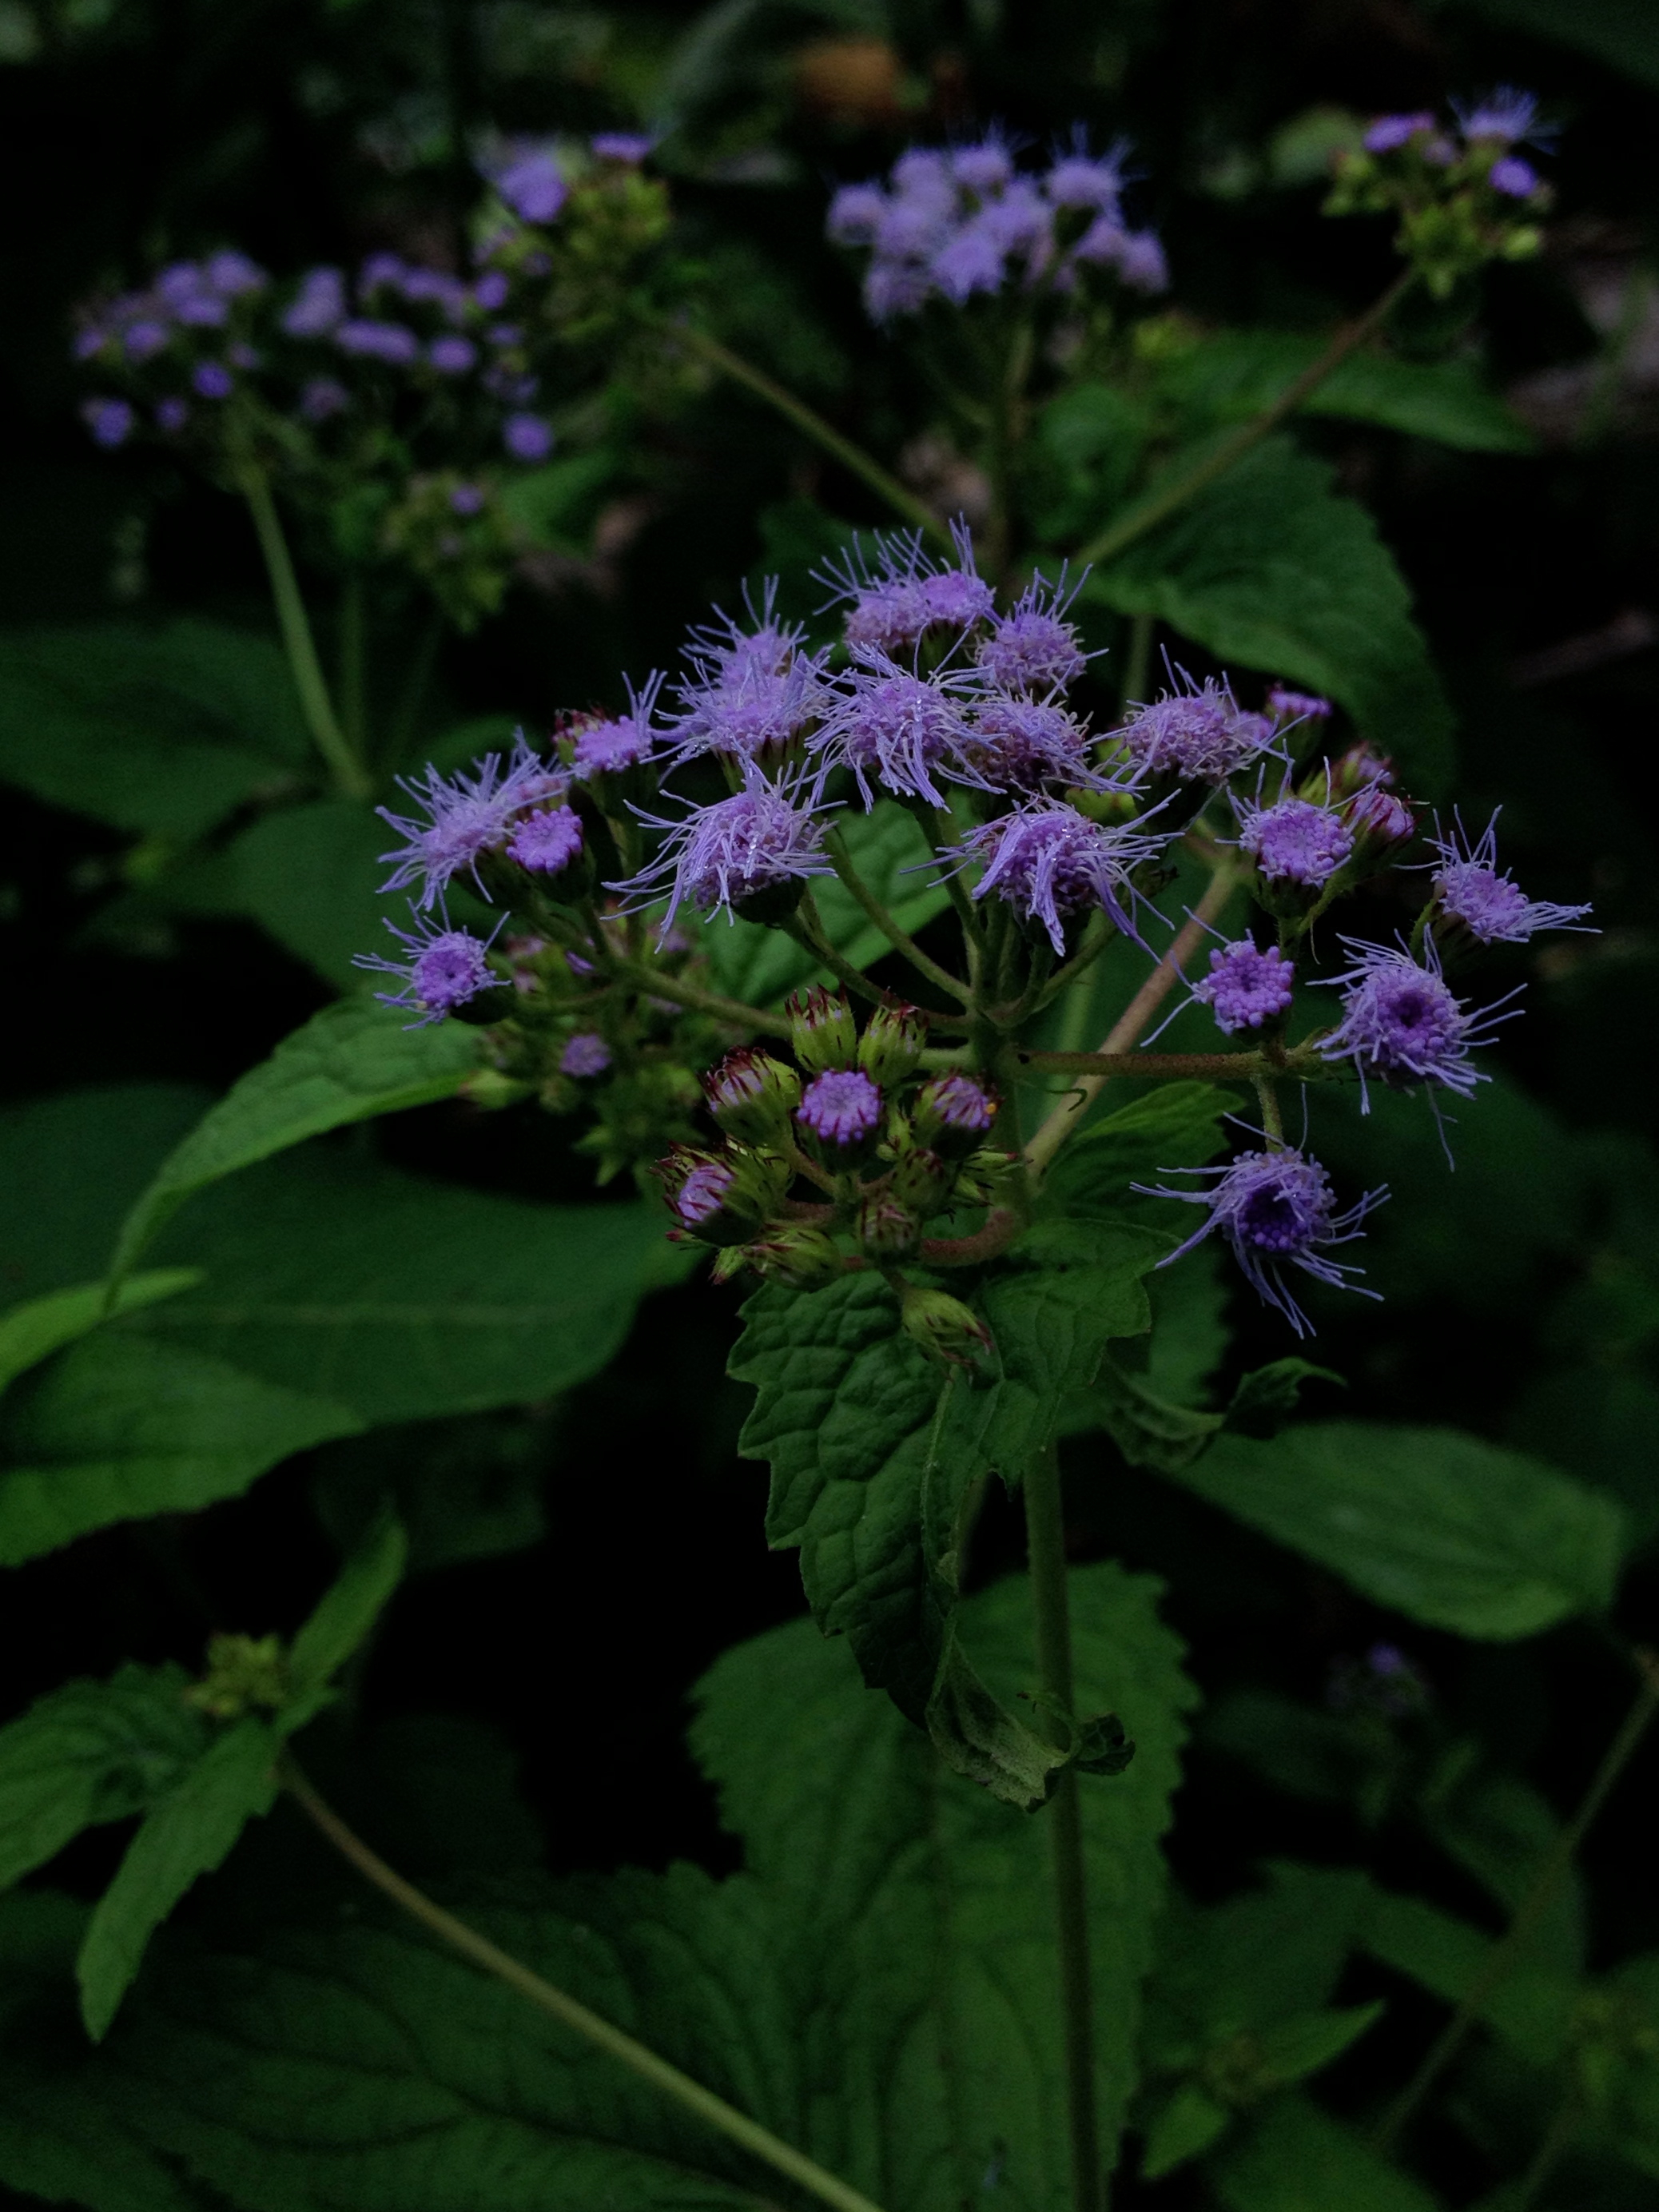 Fileconoclinium coelestinum blue mist flower 2g wikimedia fileconoclinium coelestinum blue mist flower 2g izmirmasajfo